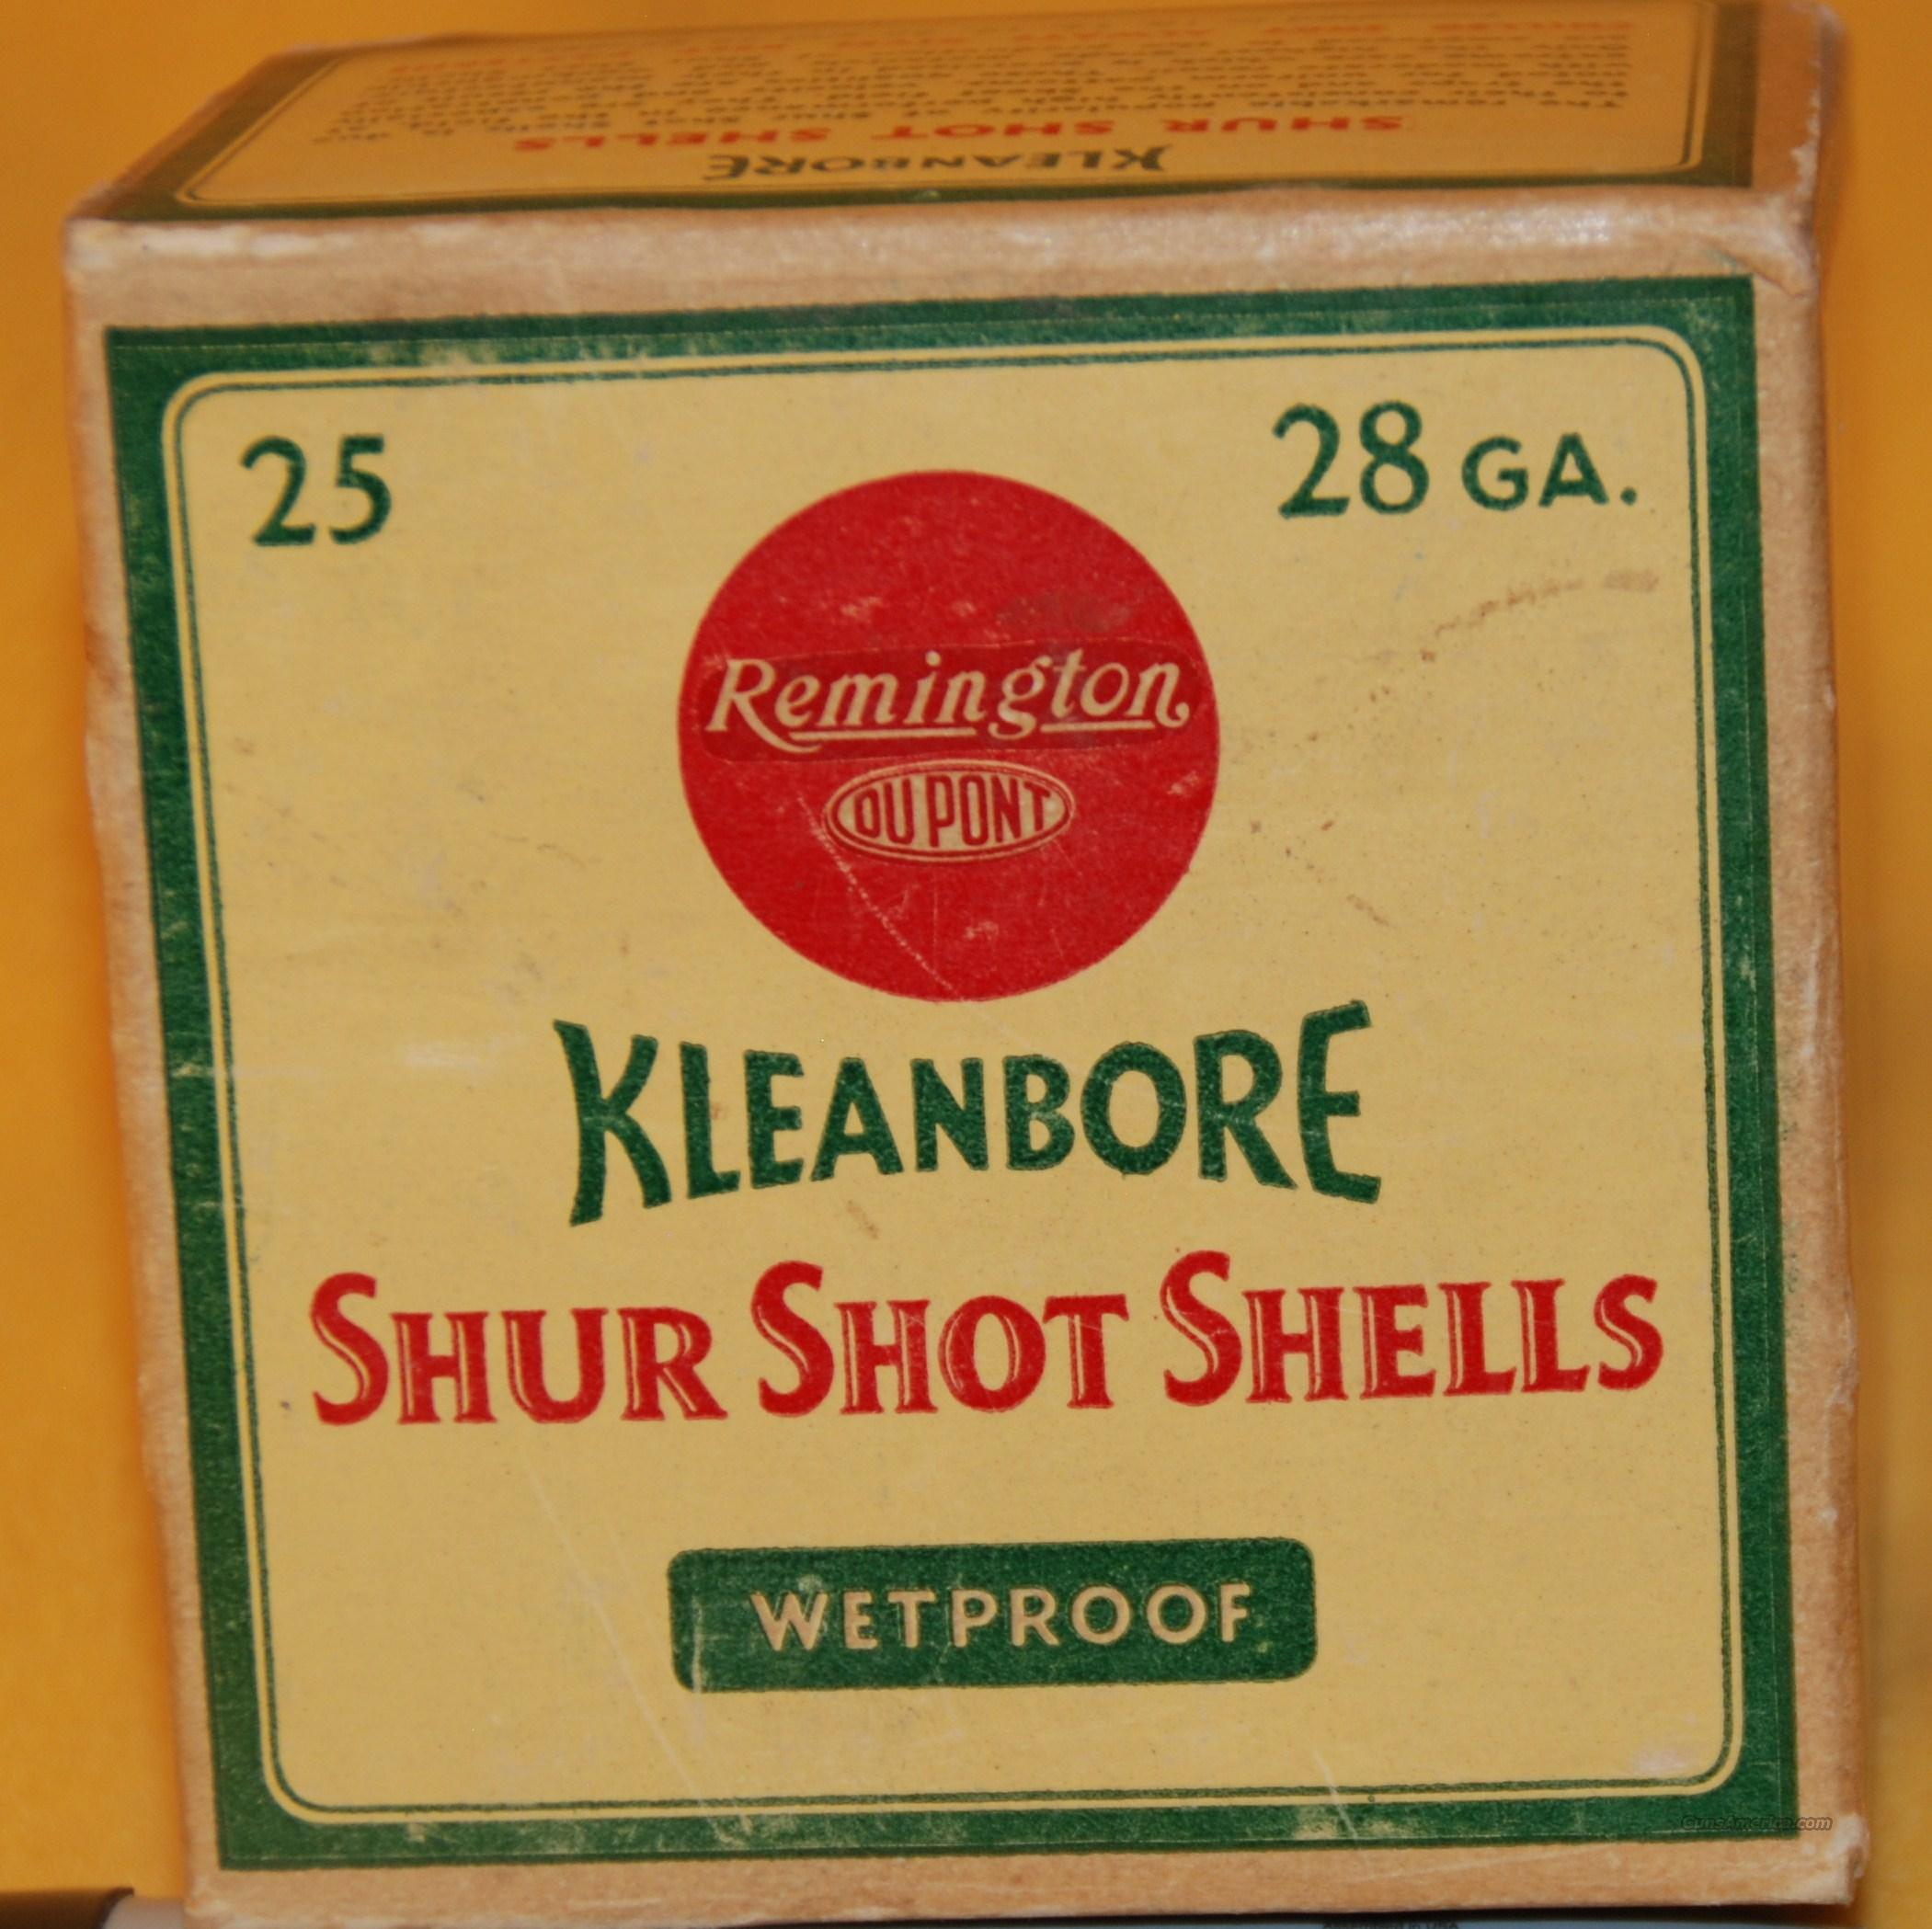 REMINGTON KLEANBORE SHUR SHOT SHELLS 28 GA   Non-Guns > Ammunition